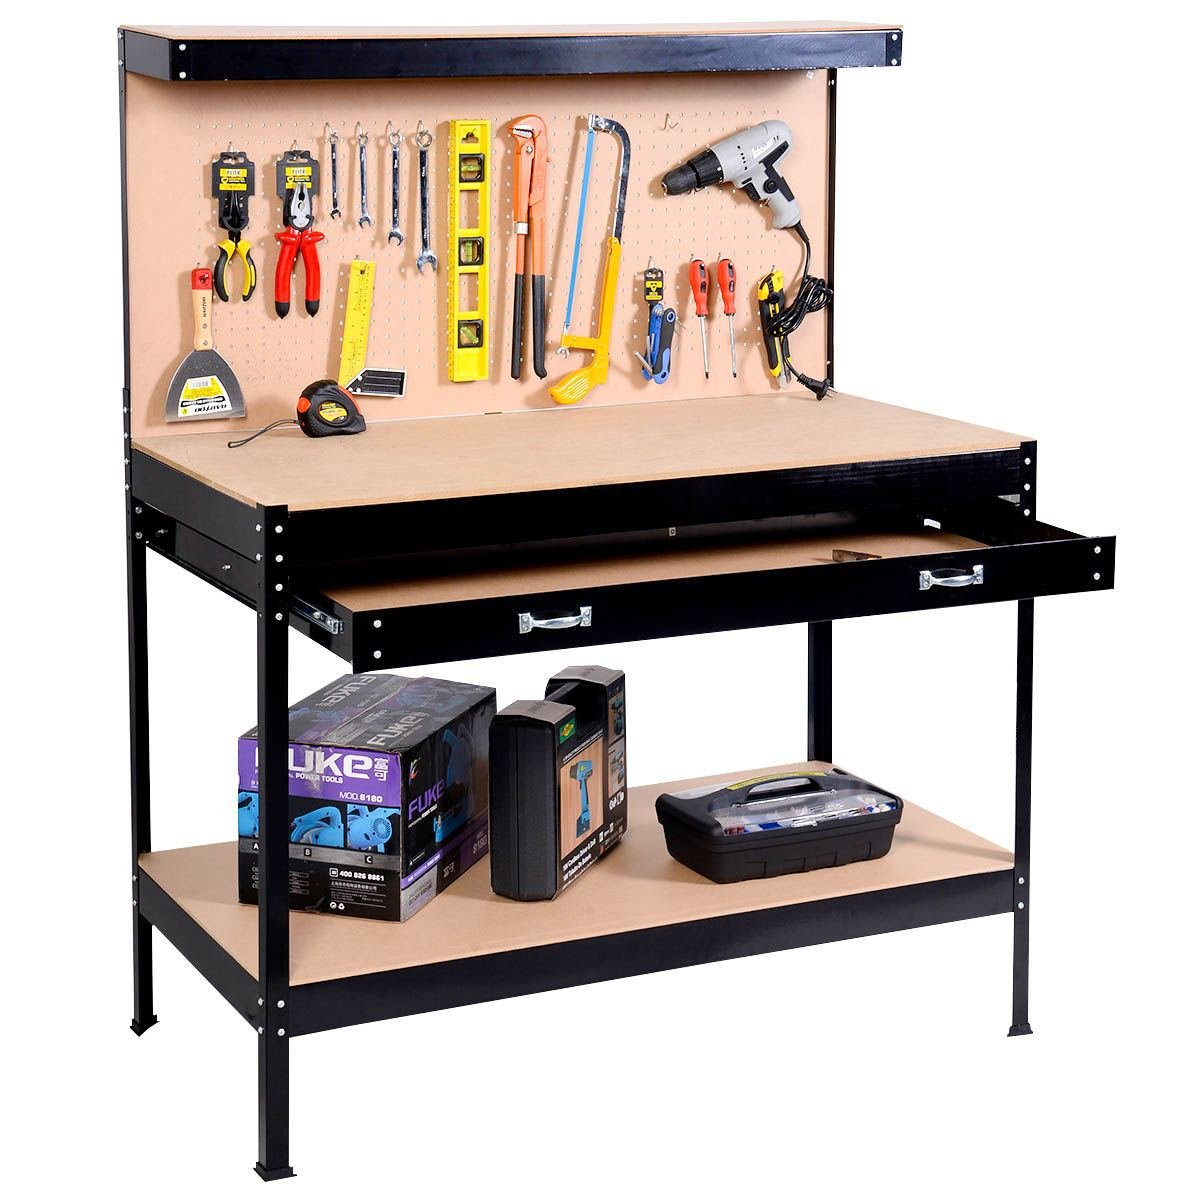 workbenches with metal depot accessories olympia x w the d h built drawers steel ft black in power workbench lighting home and p